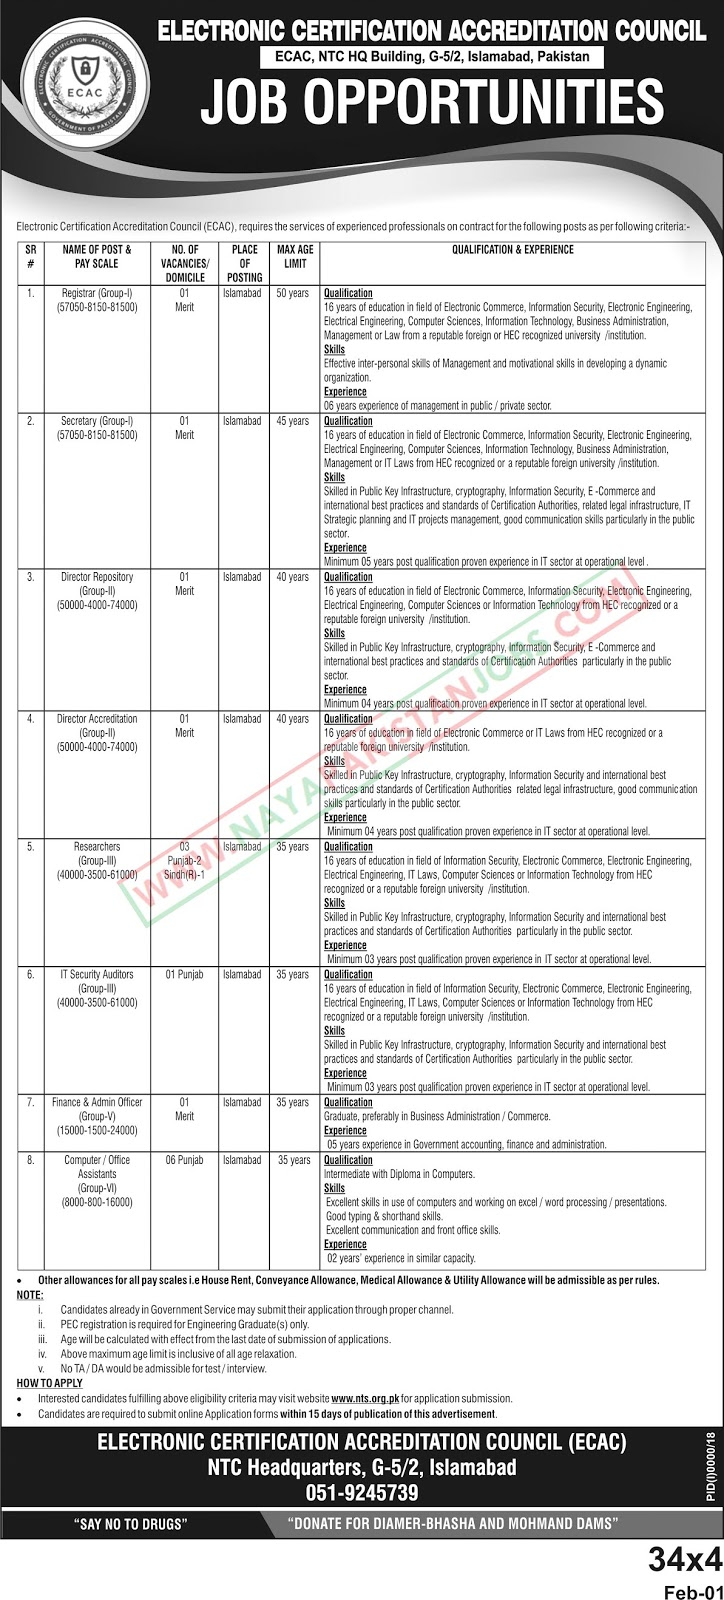 ECAC Jobs,ECAC Electronic Certification Accreditation Council Jobs 2019 Feb